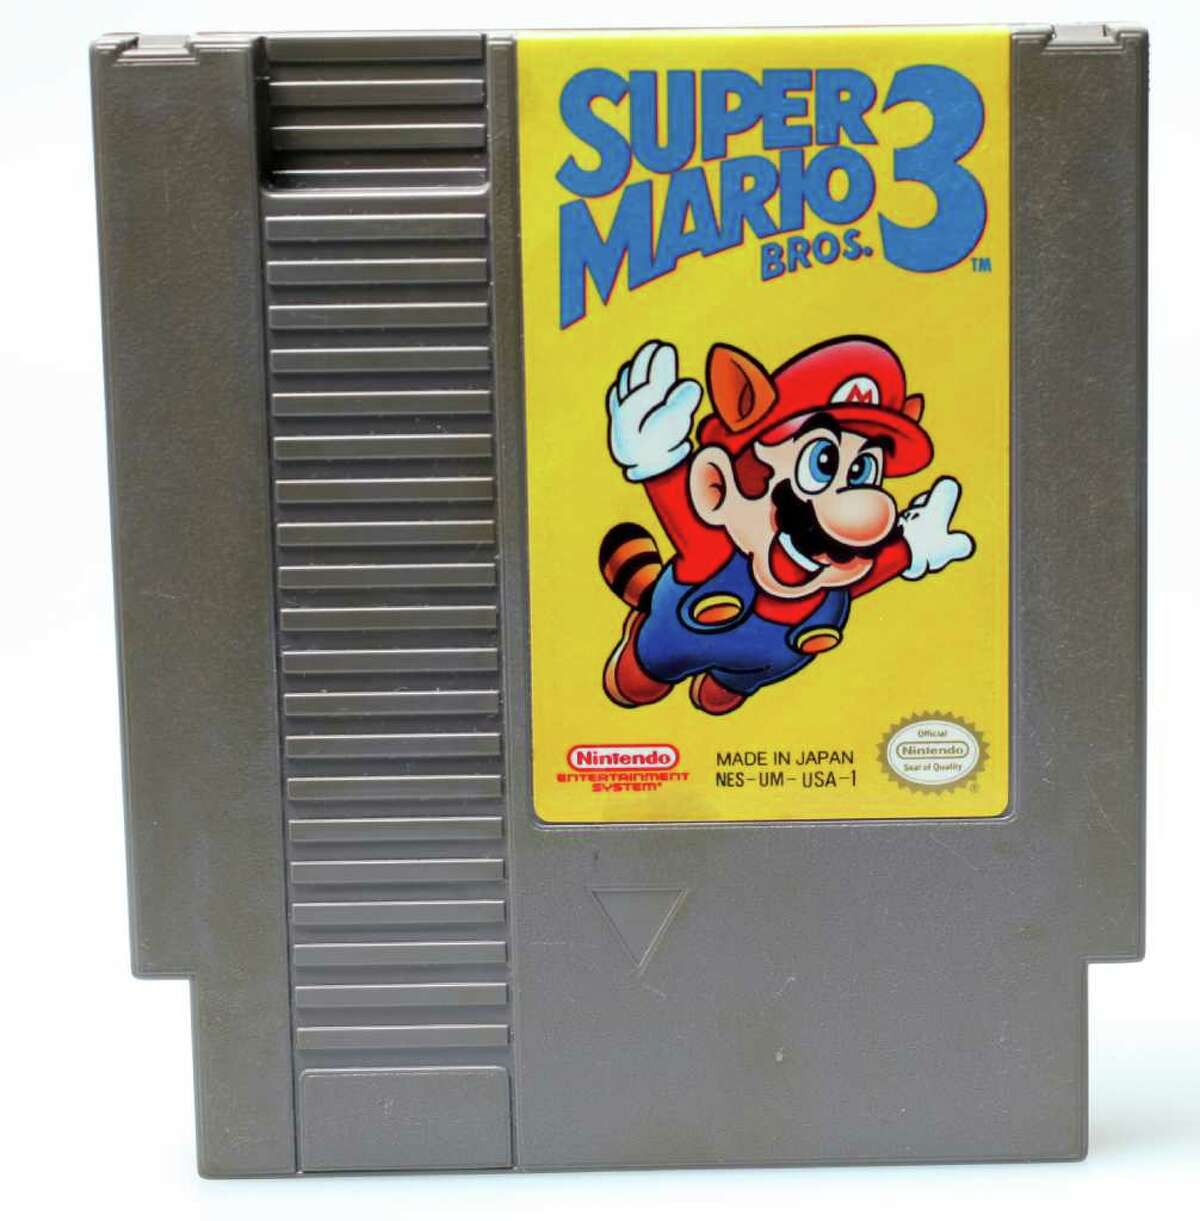 Retro Gaming Super Mario Bros. 3.